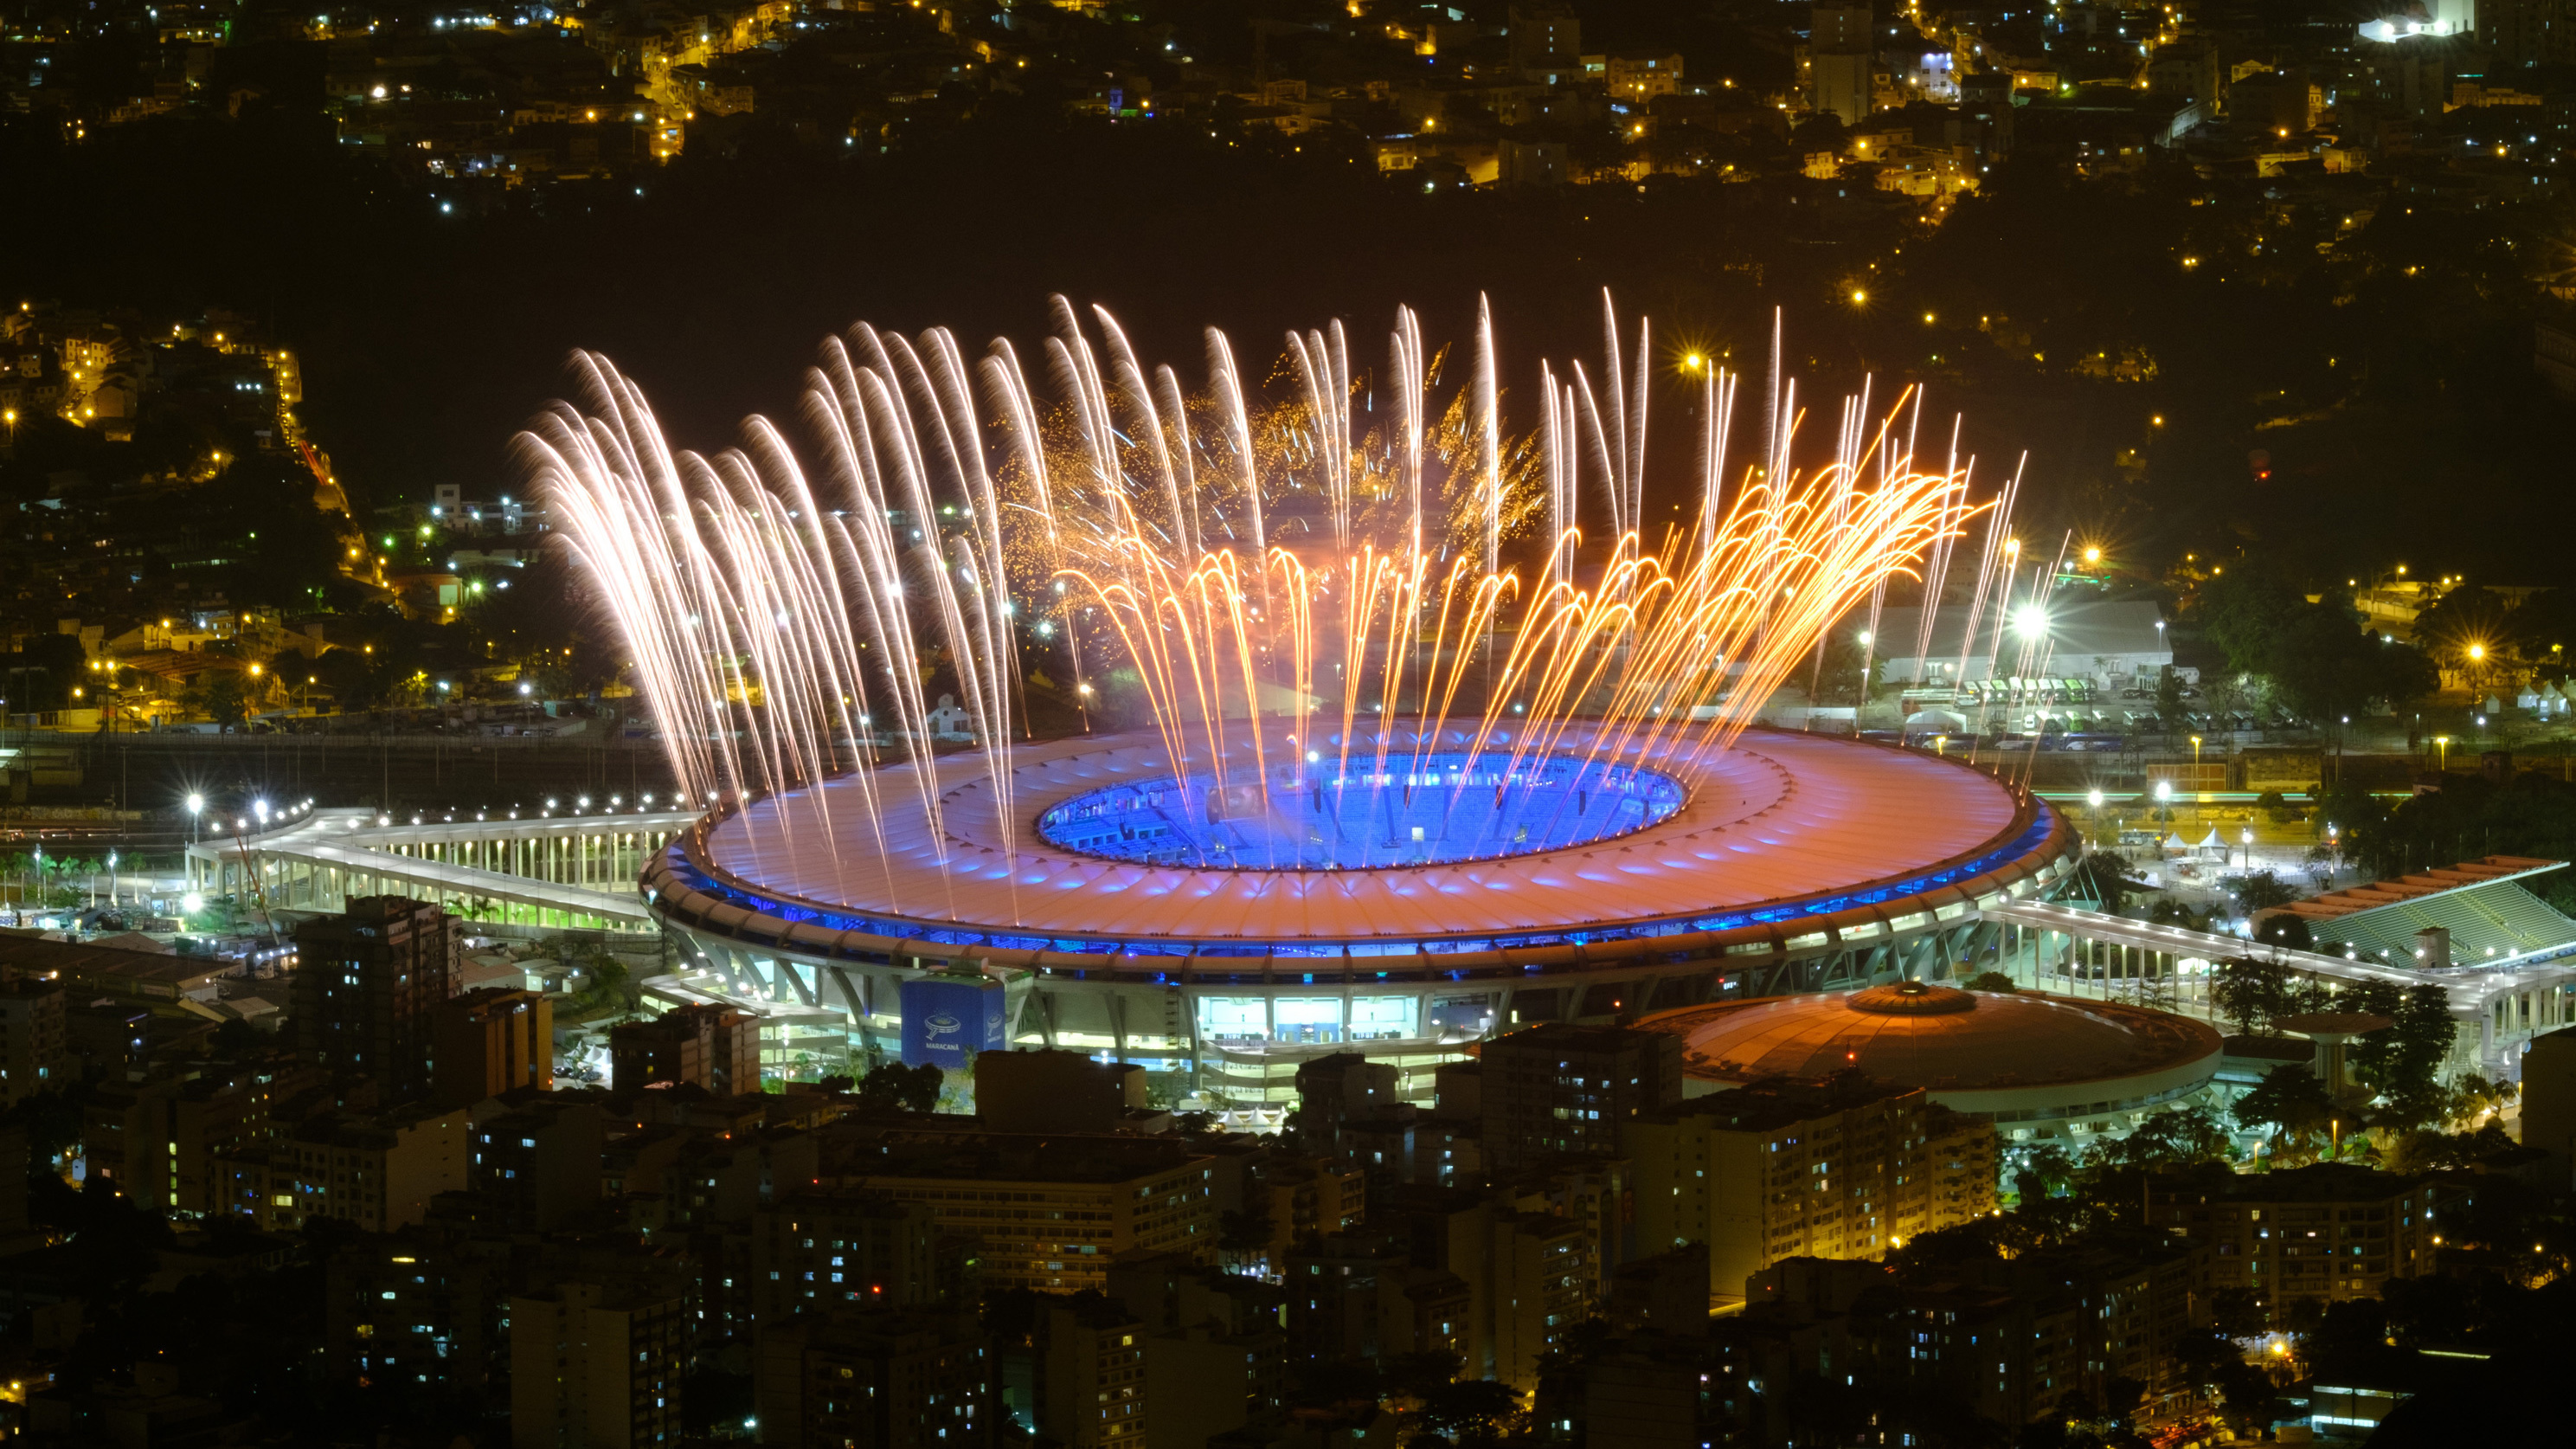 Rio Olympic Summer Olympics 2016 Opening Ceremony It S Going To Be Awesome